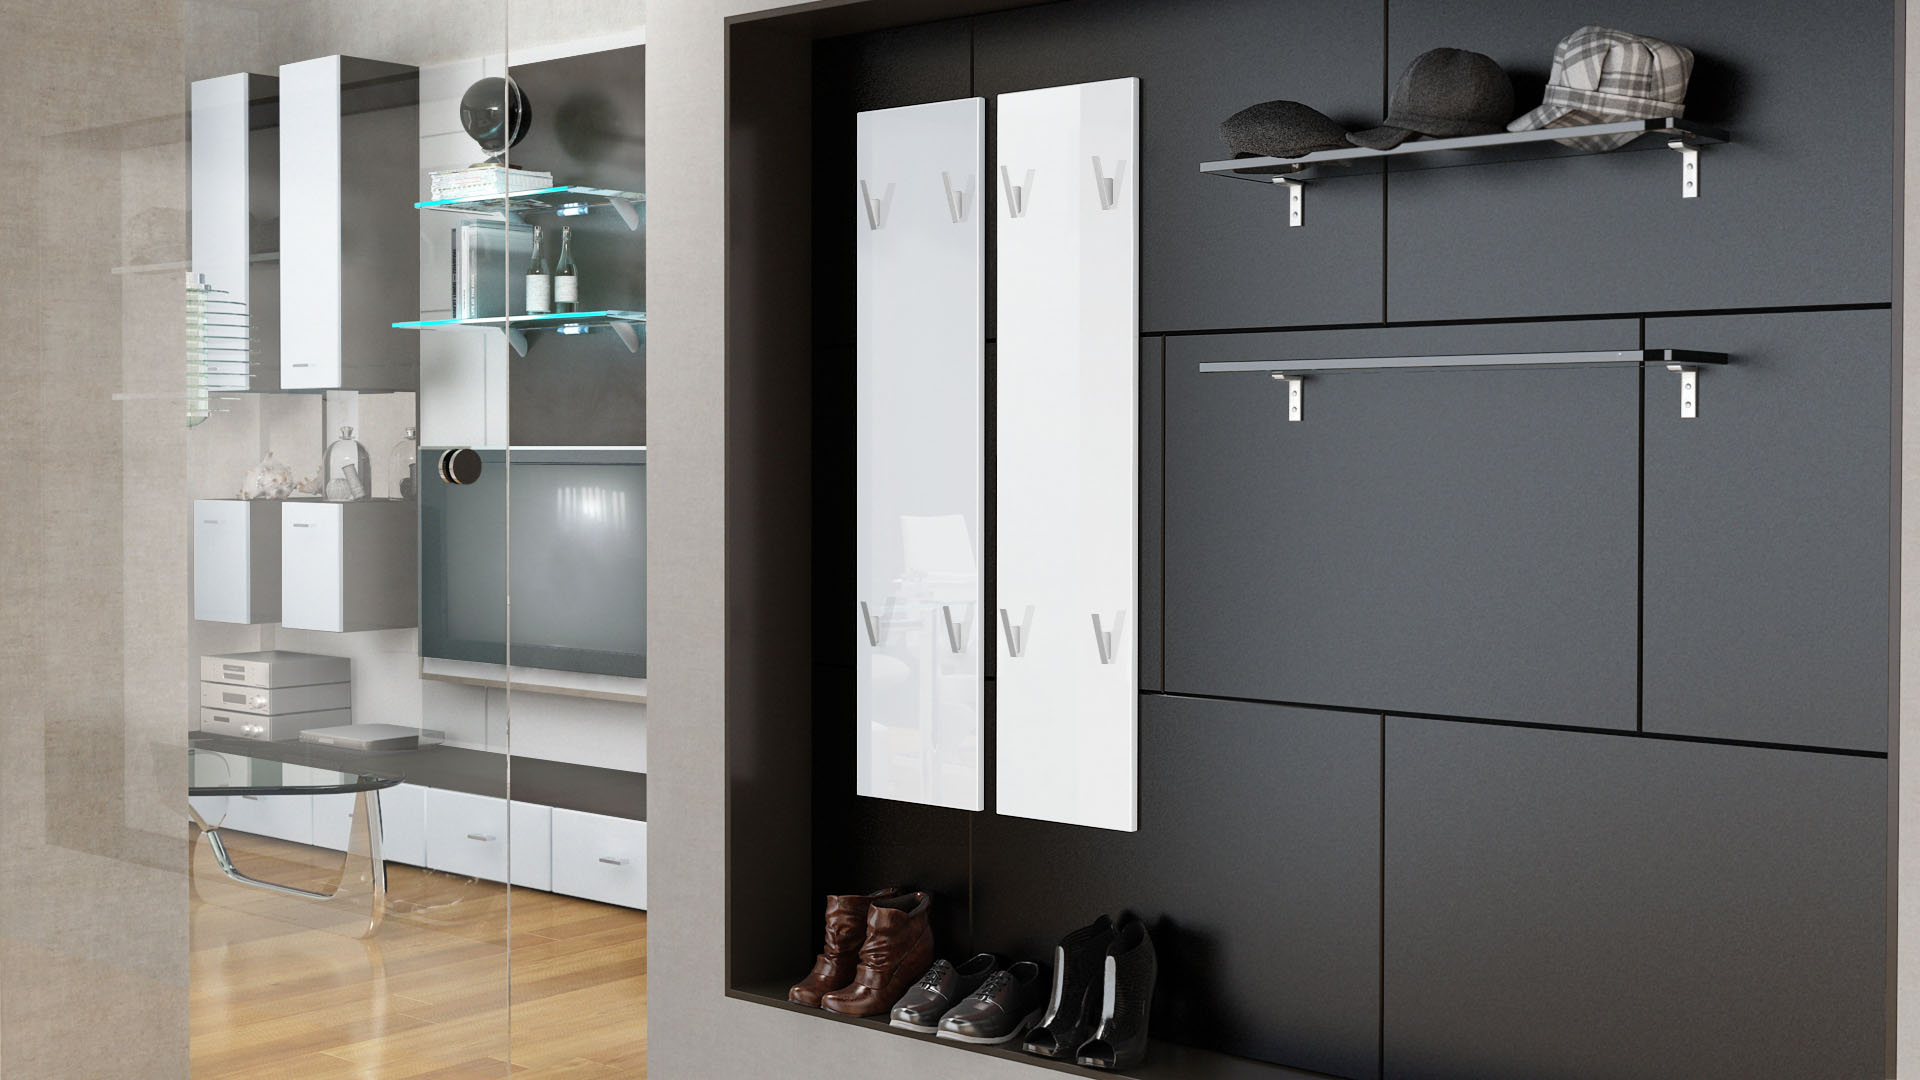 garderobenpaneel wandgarderobe garderobe wandpaneel 120. Black Bedroom Furniture Sets. Home Design Ideas